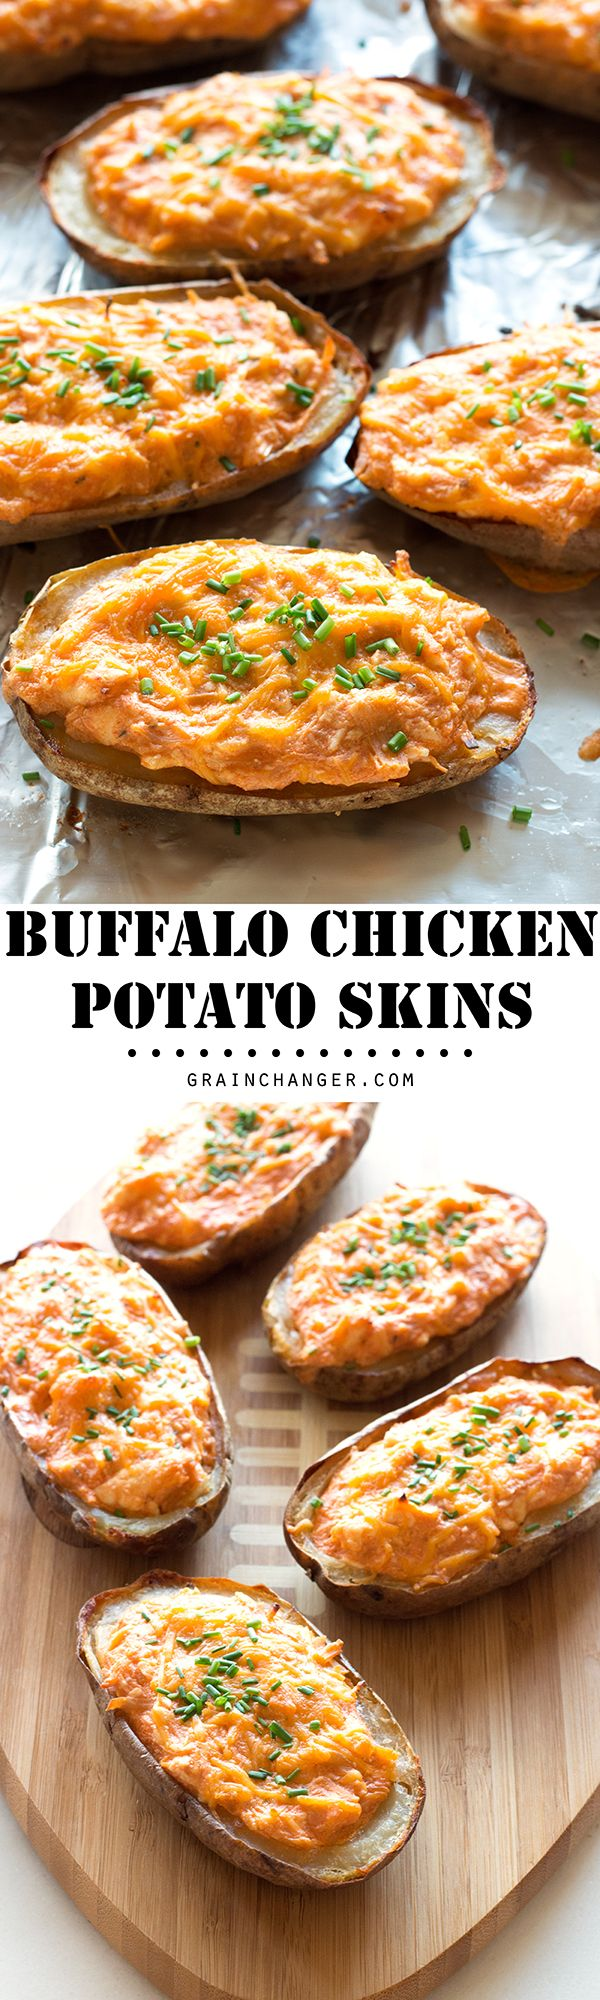 Two of the greatest football gameday foods - buffalo chicken dip and potato skins - come together for one of the most epic gluten-free football tailgate appetizers ever: Buffalo Chicken Potato Skins!